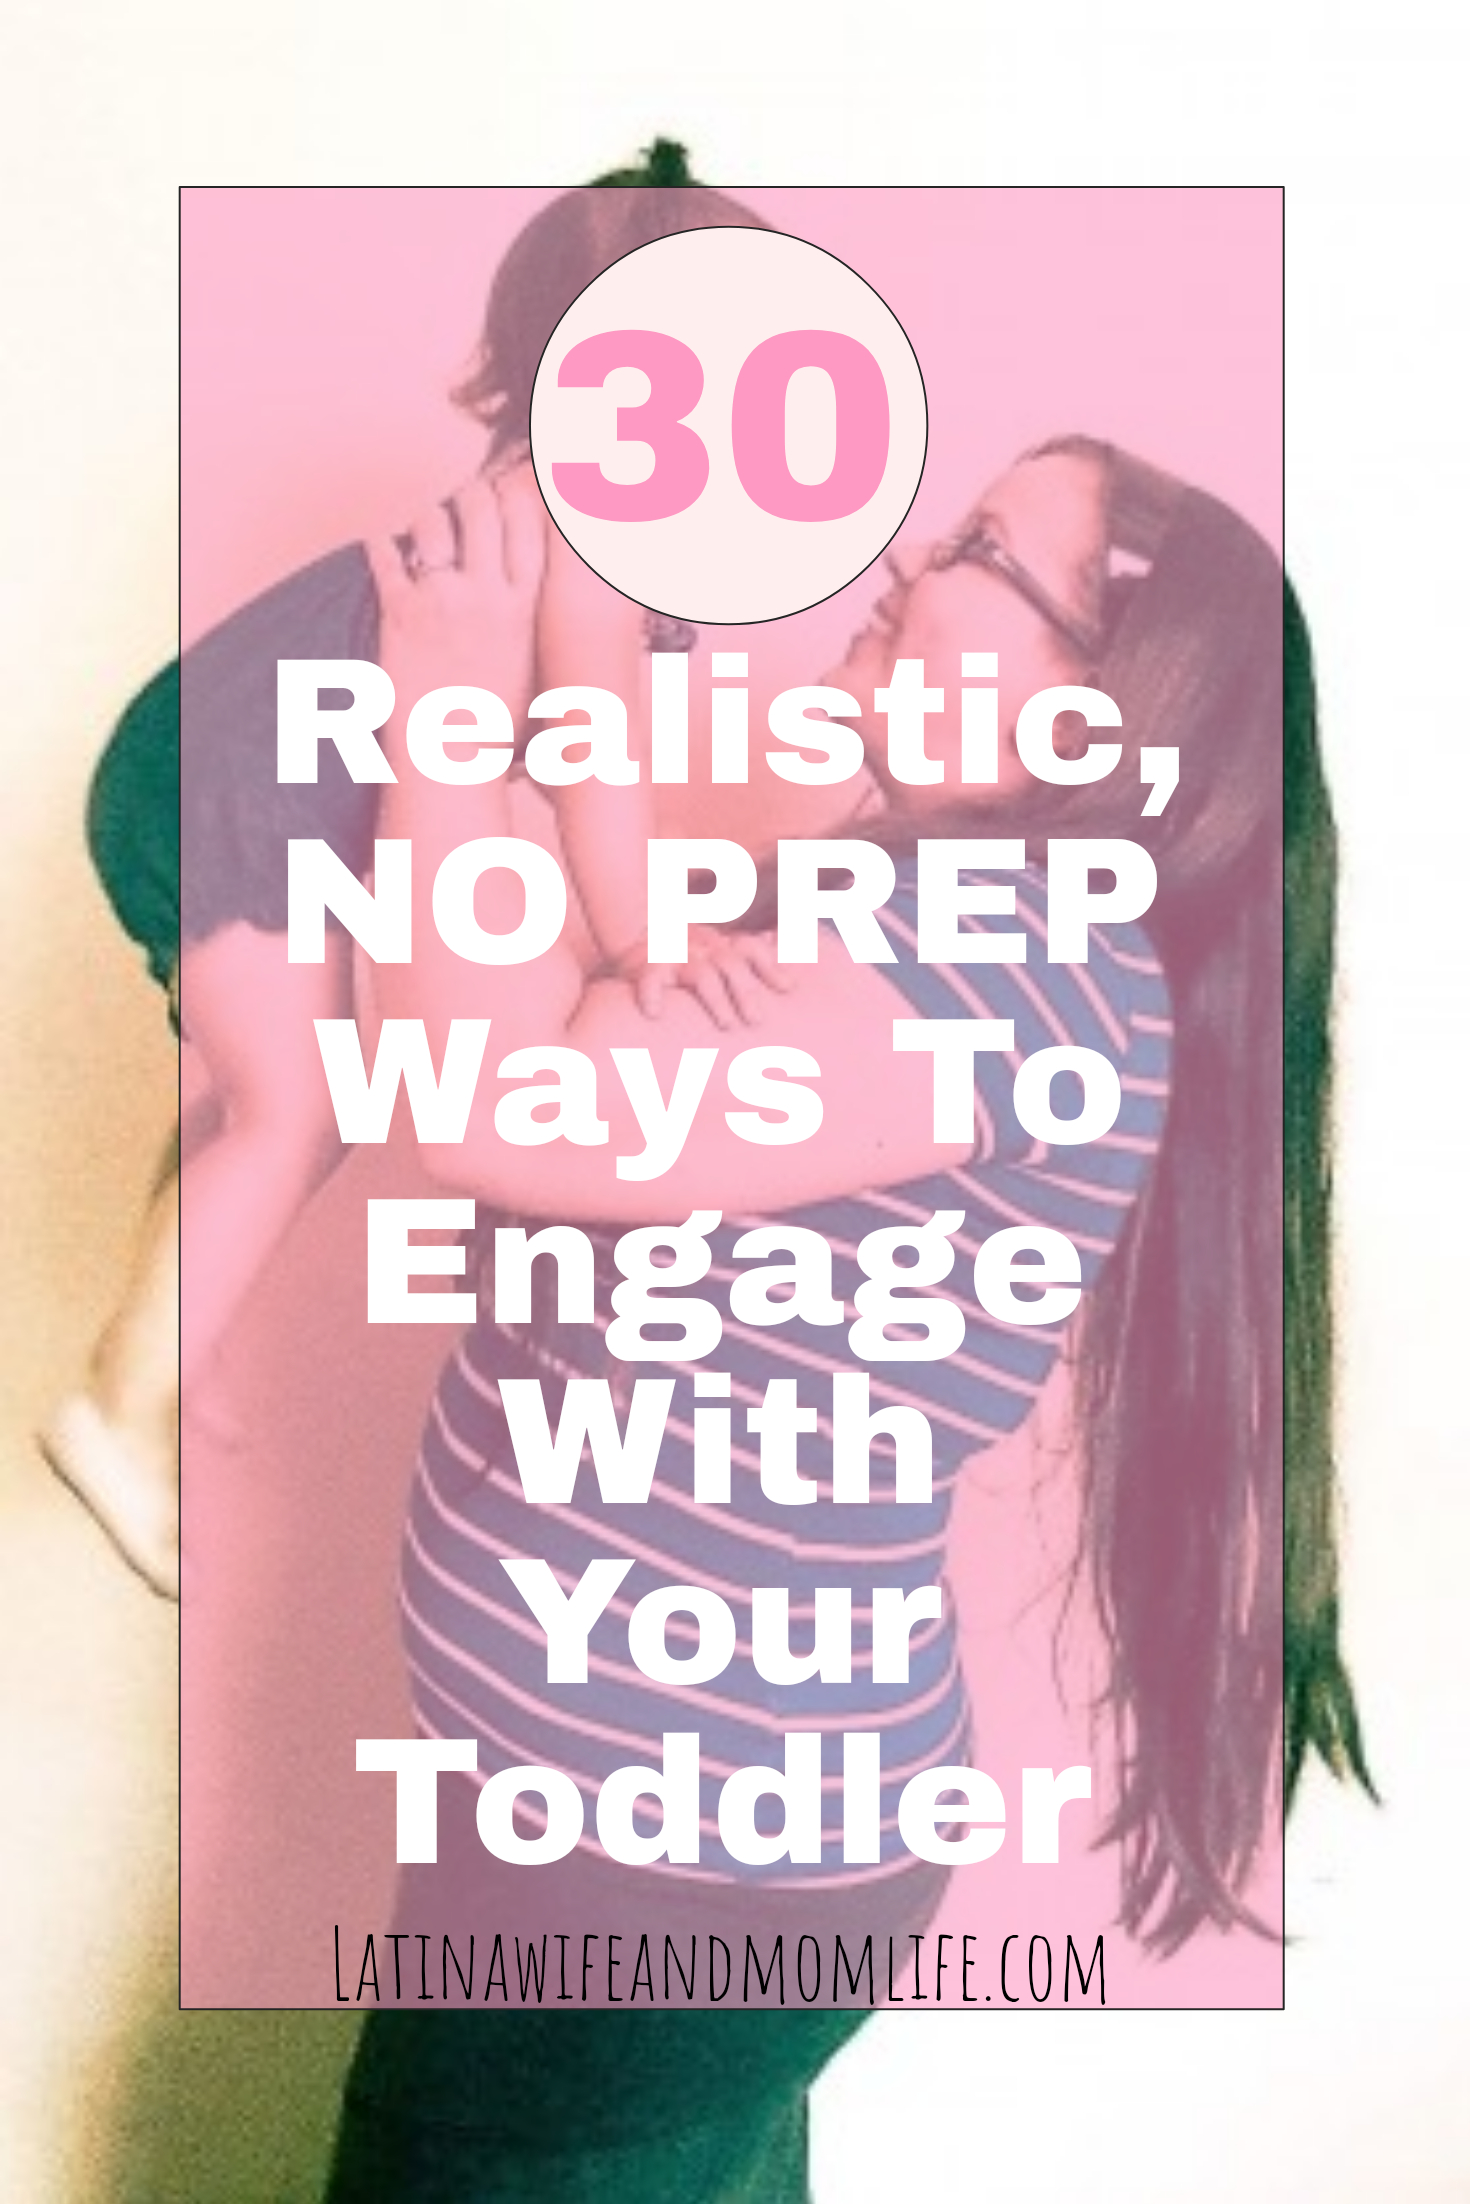 Things to do with your toddler. In this post, I have compiled for you my top realistically, implementable fun ways to engage with your toddlers! #quality time #toddlers #activities #toddleractivities #mommydaughtertime #mommybabytime